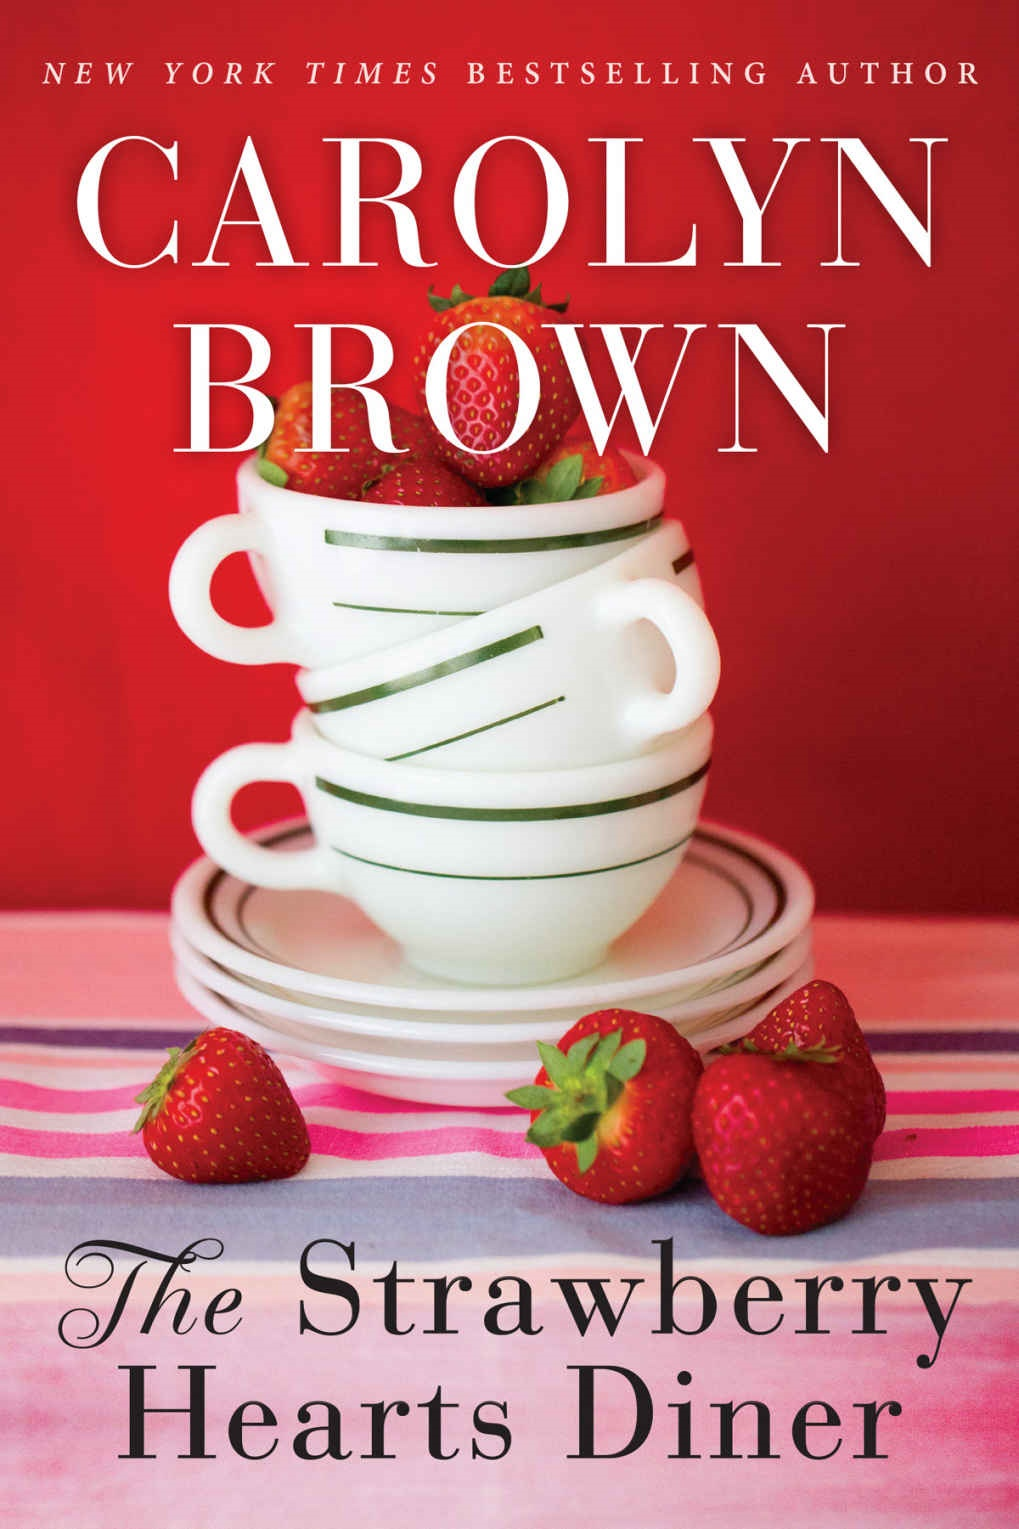 The Strawberry Hearts Diner - Carolyn Brown [kindle] [mobi]